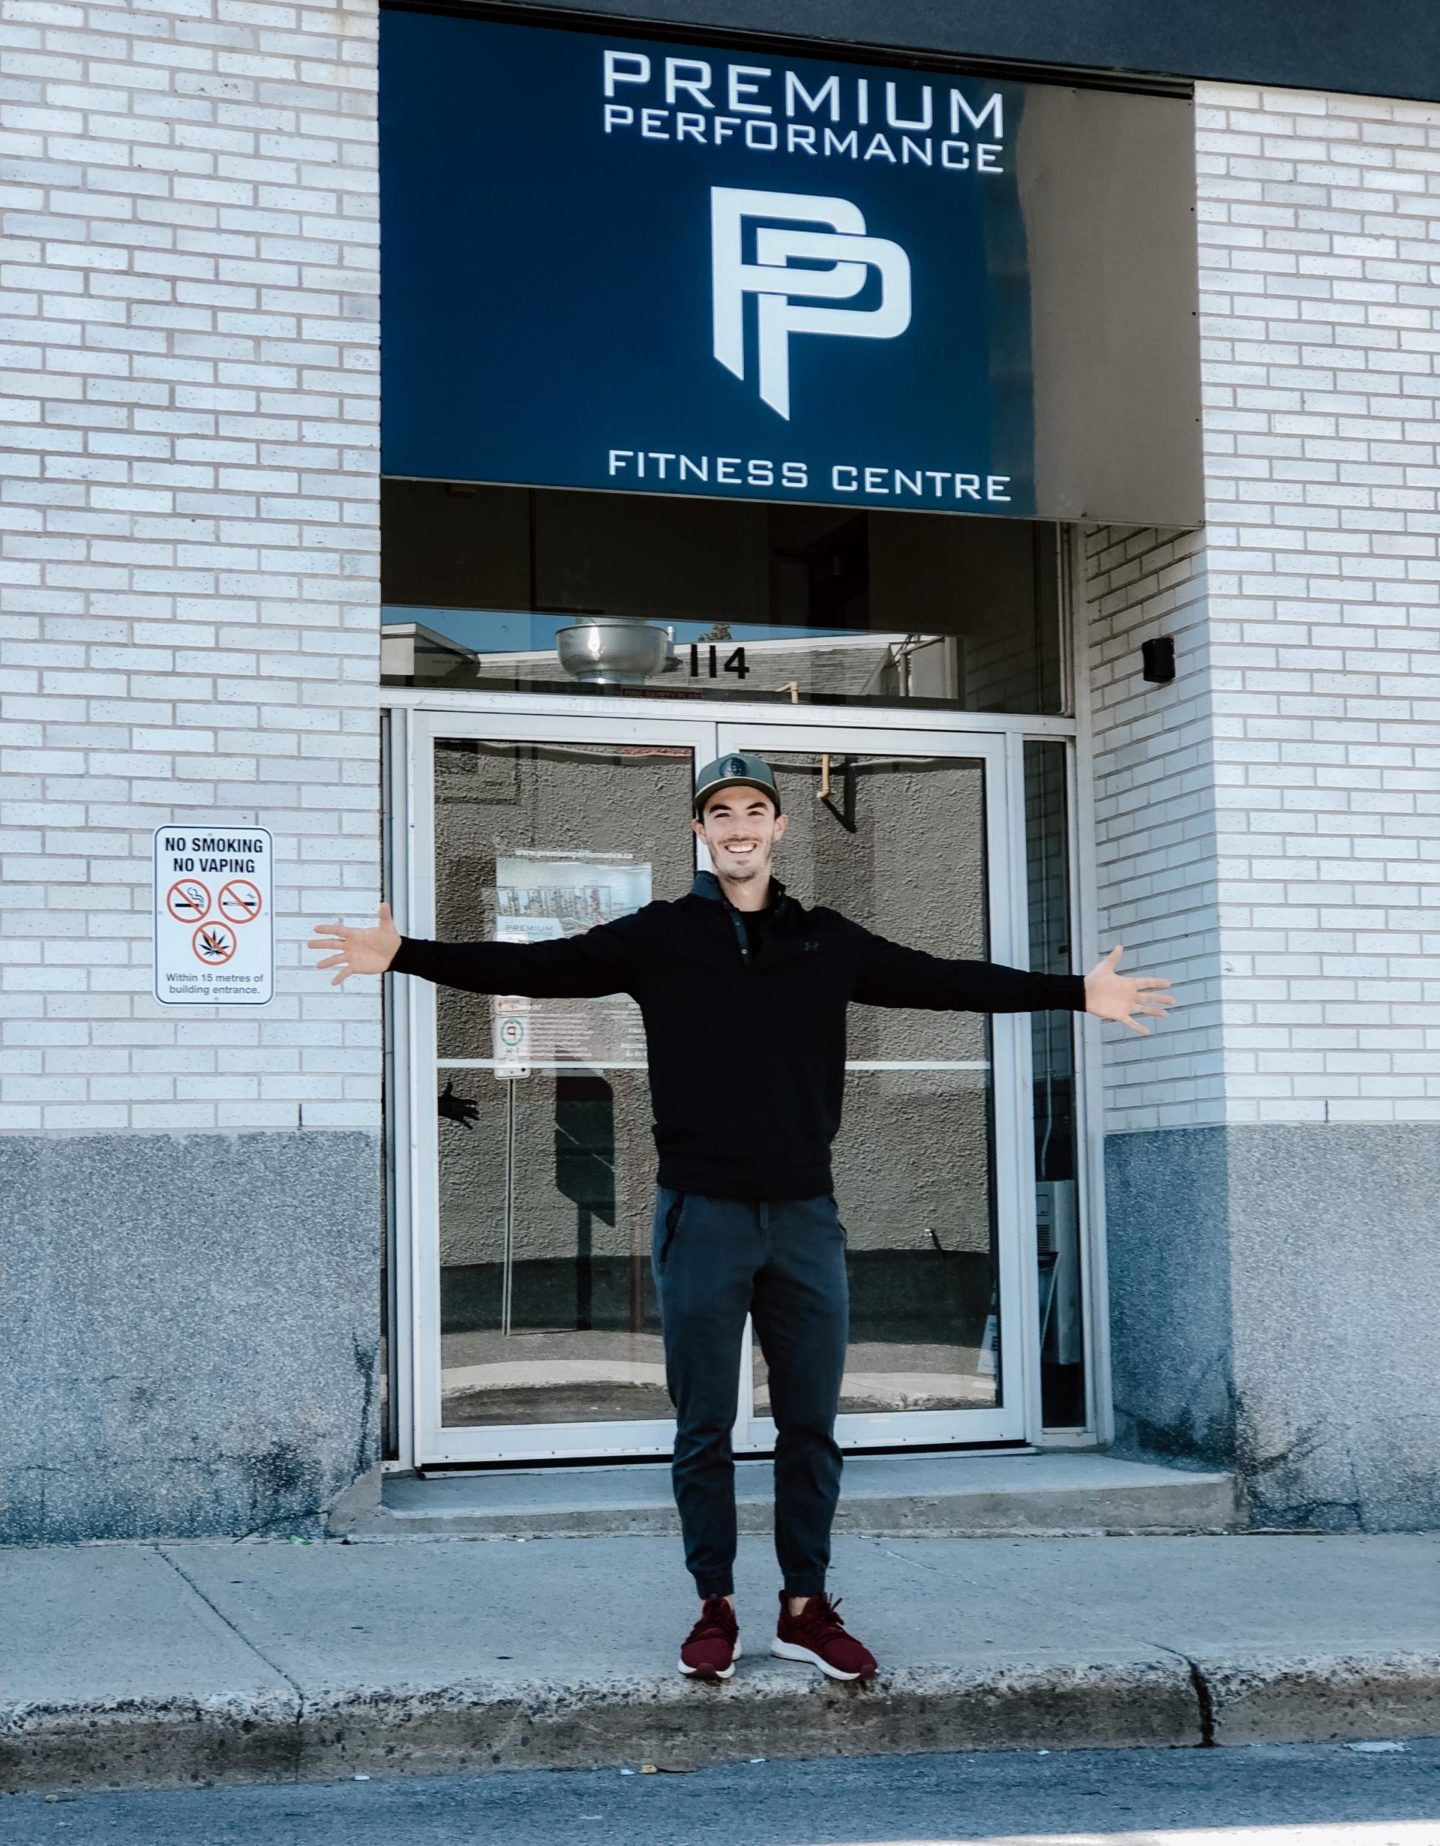 Dave Fontaine, Co-Owner of Premium Performance standing outside of gym